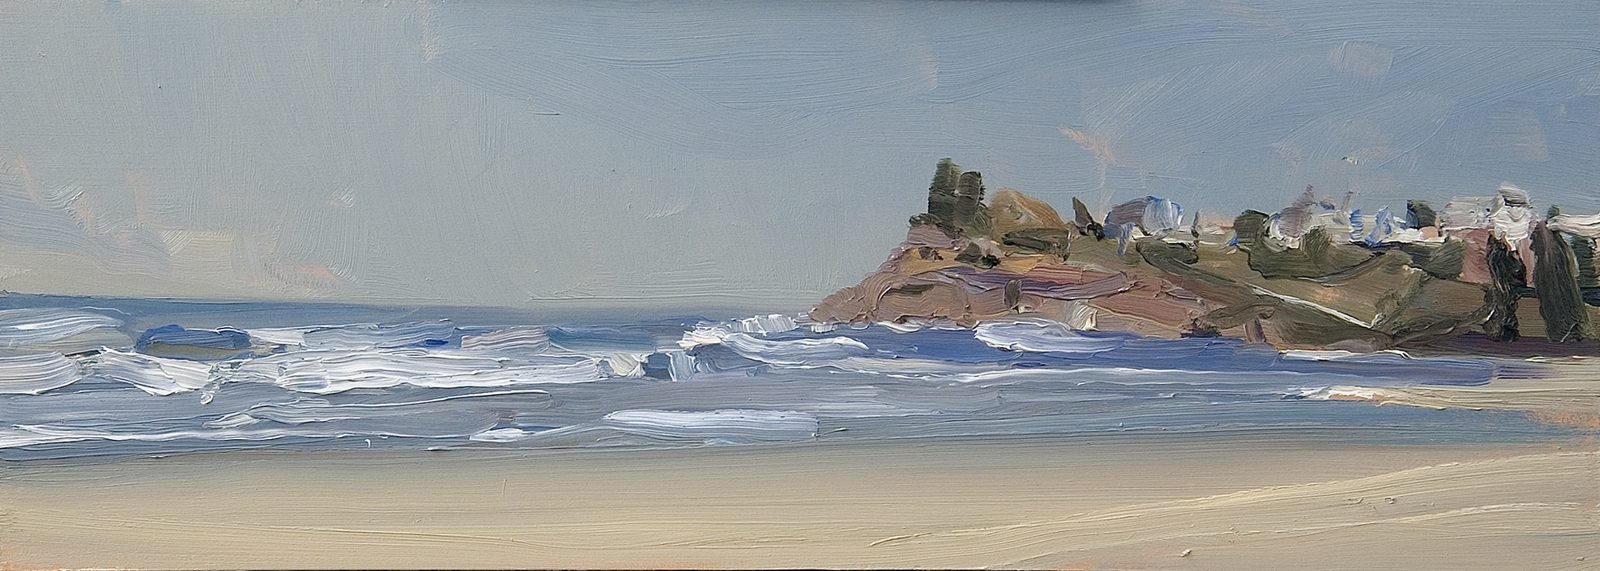 Sketch (Moffat Beach) 2009 no.3 image